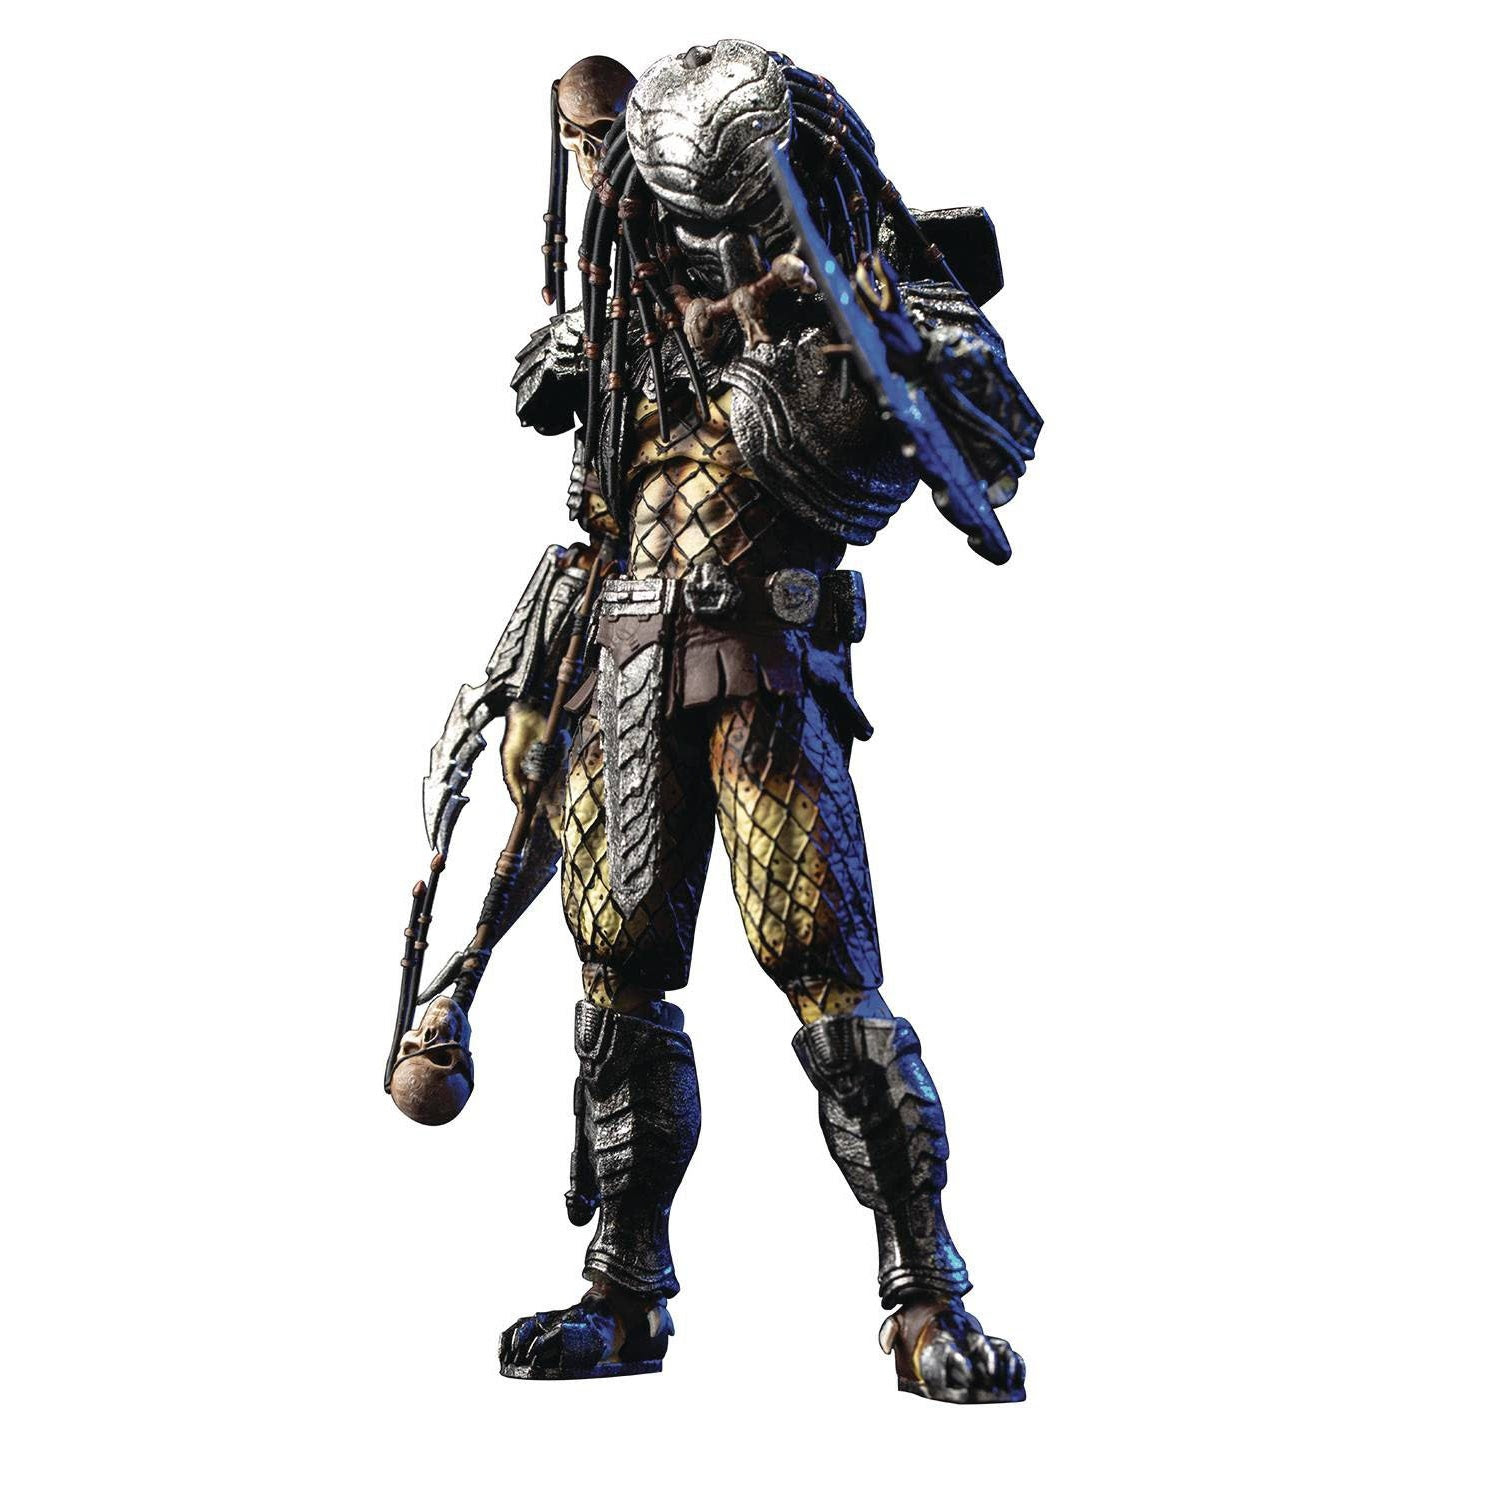 Image of AVP Chopper Predator PX 1/18 Scale Figure - AUGUST 2021